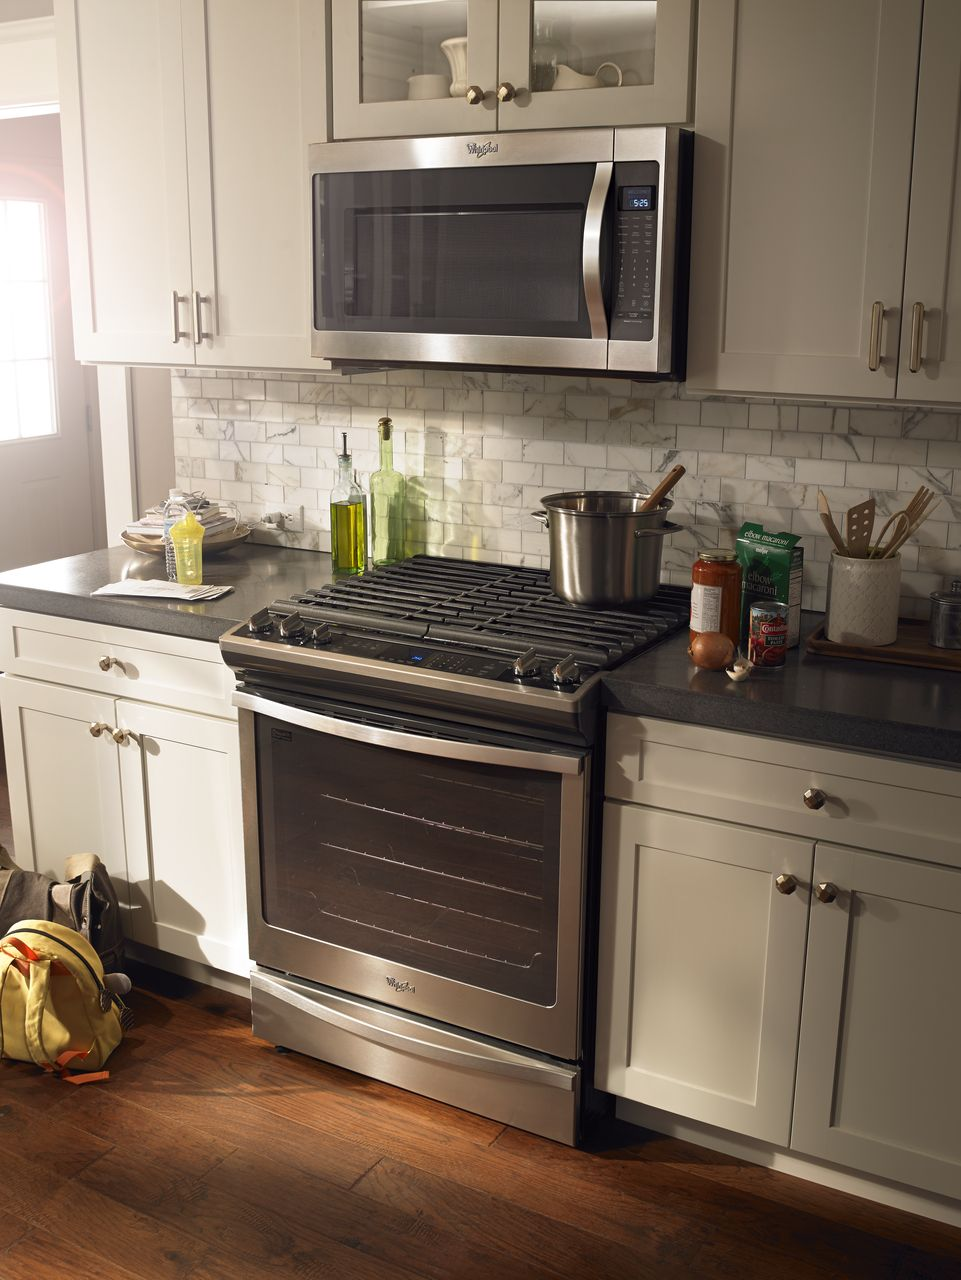 Why Your Over The Stove Microwave Turns On Randomly